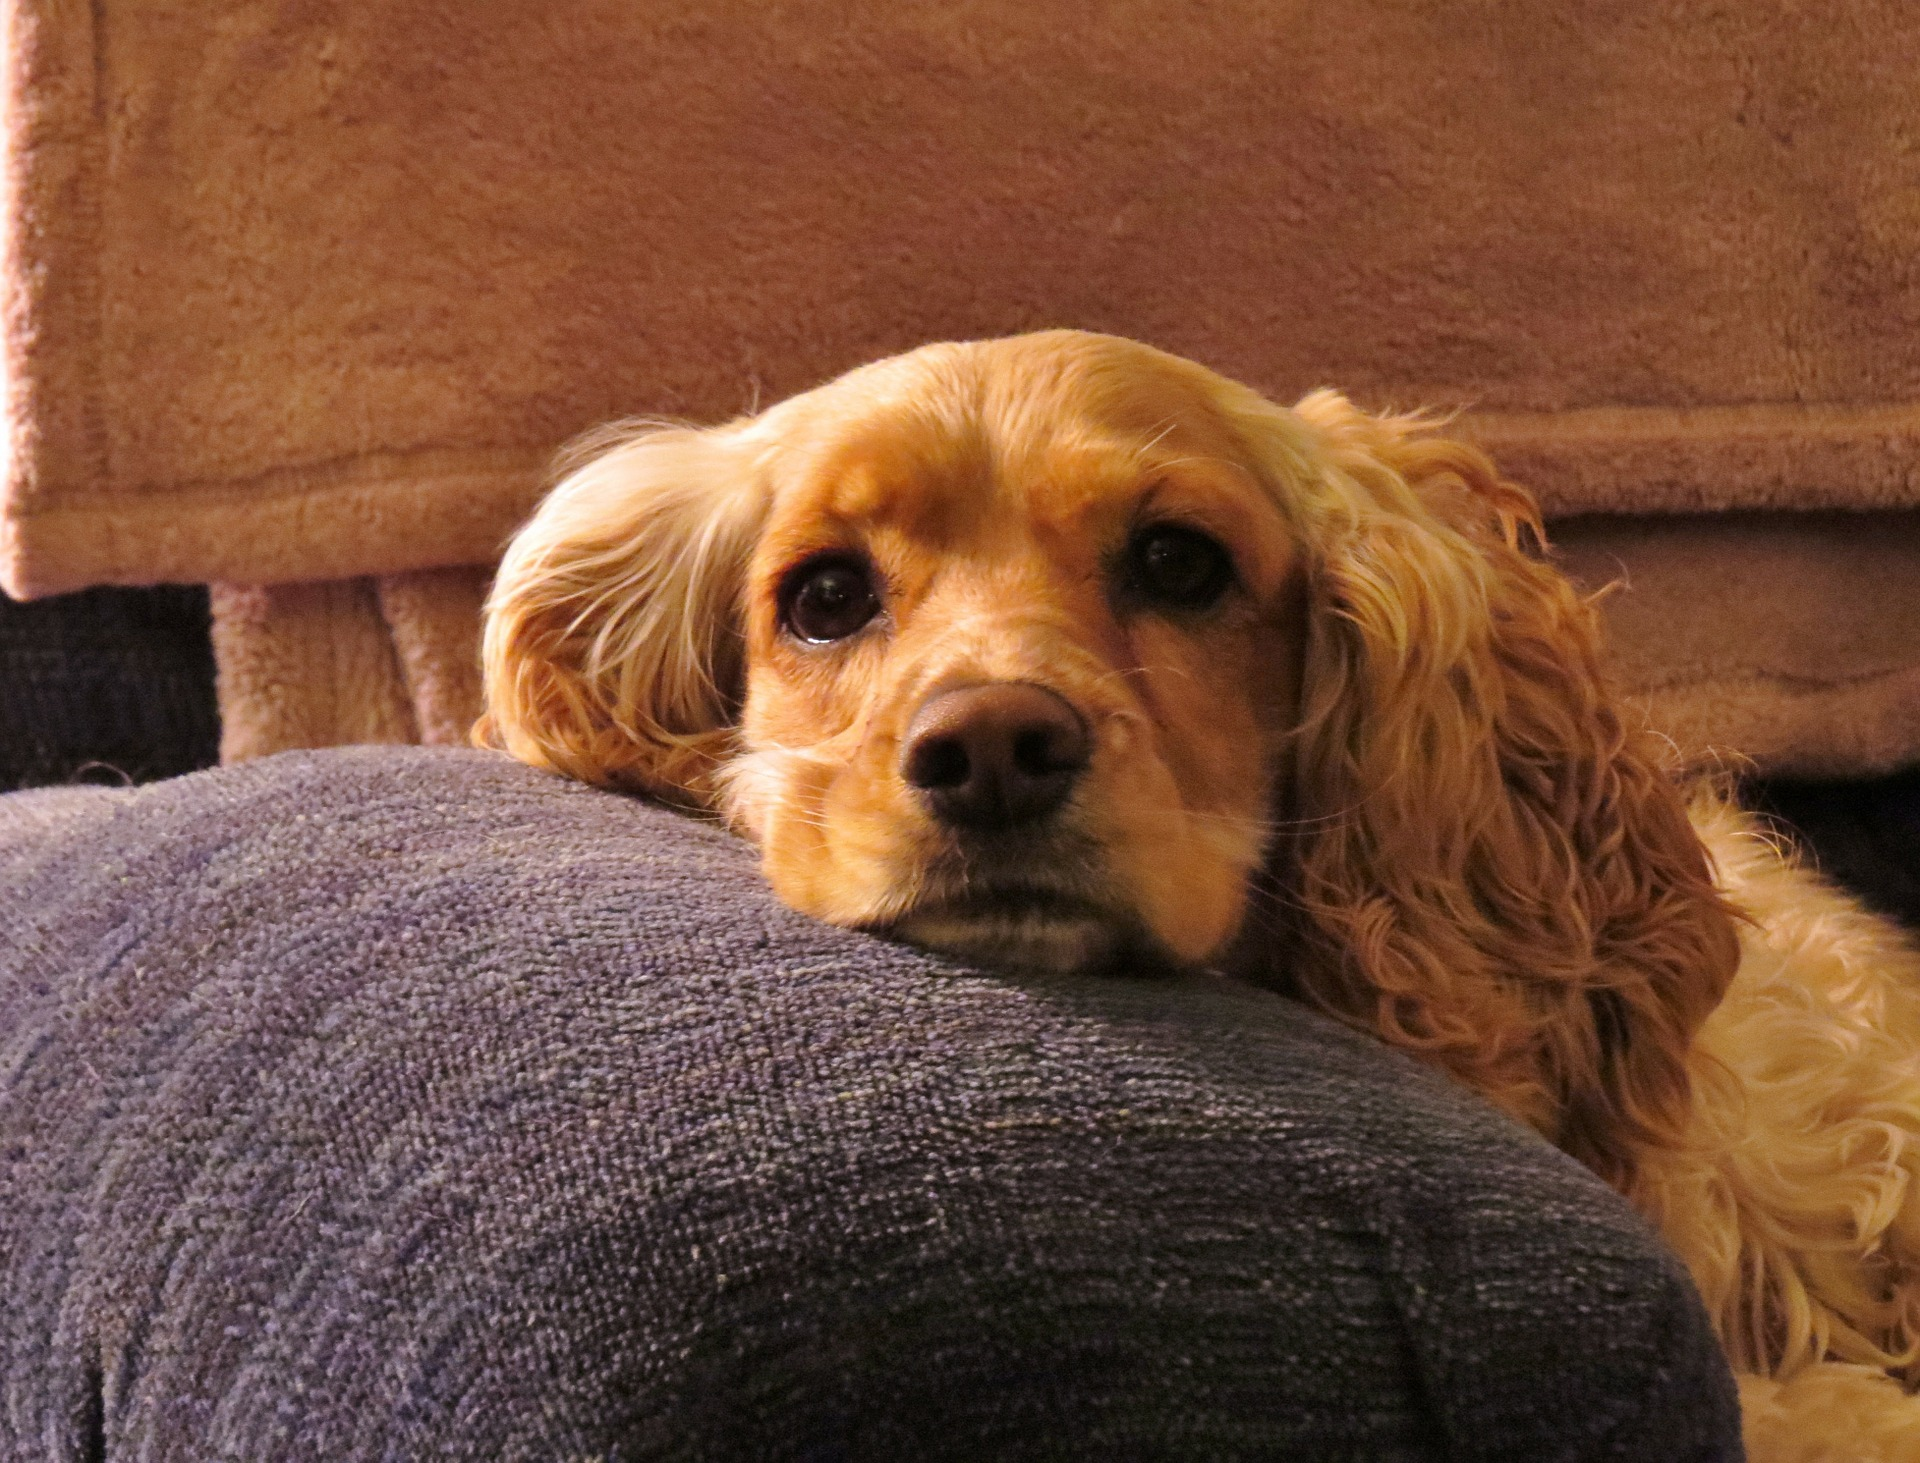 cocker spaniel resting his chin on the arm of a couch